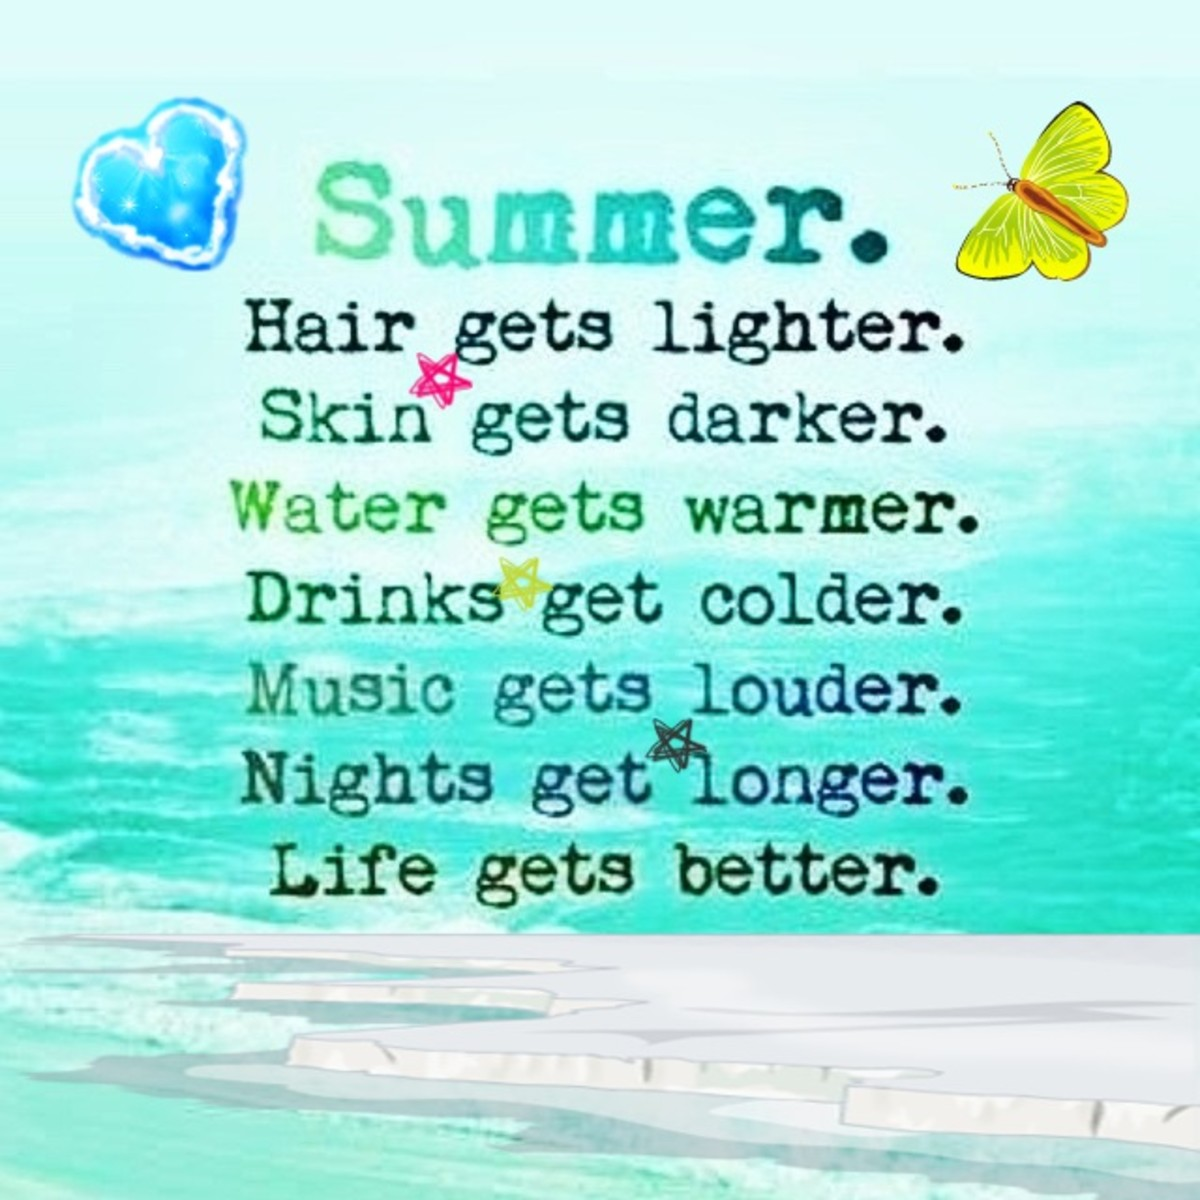 Cute Summer Quotes & Captions for Instagram